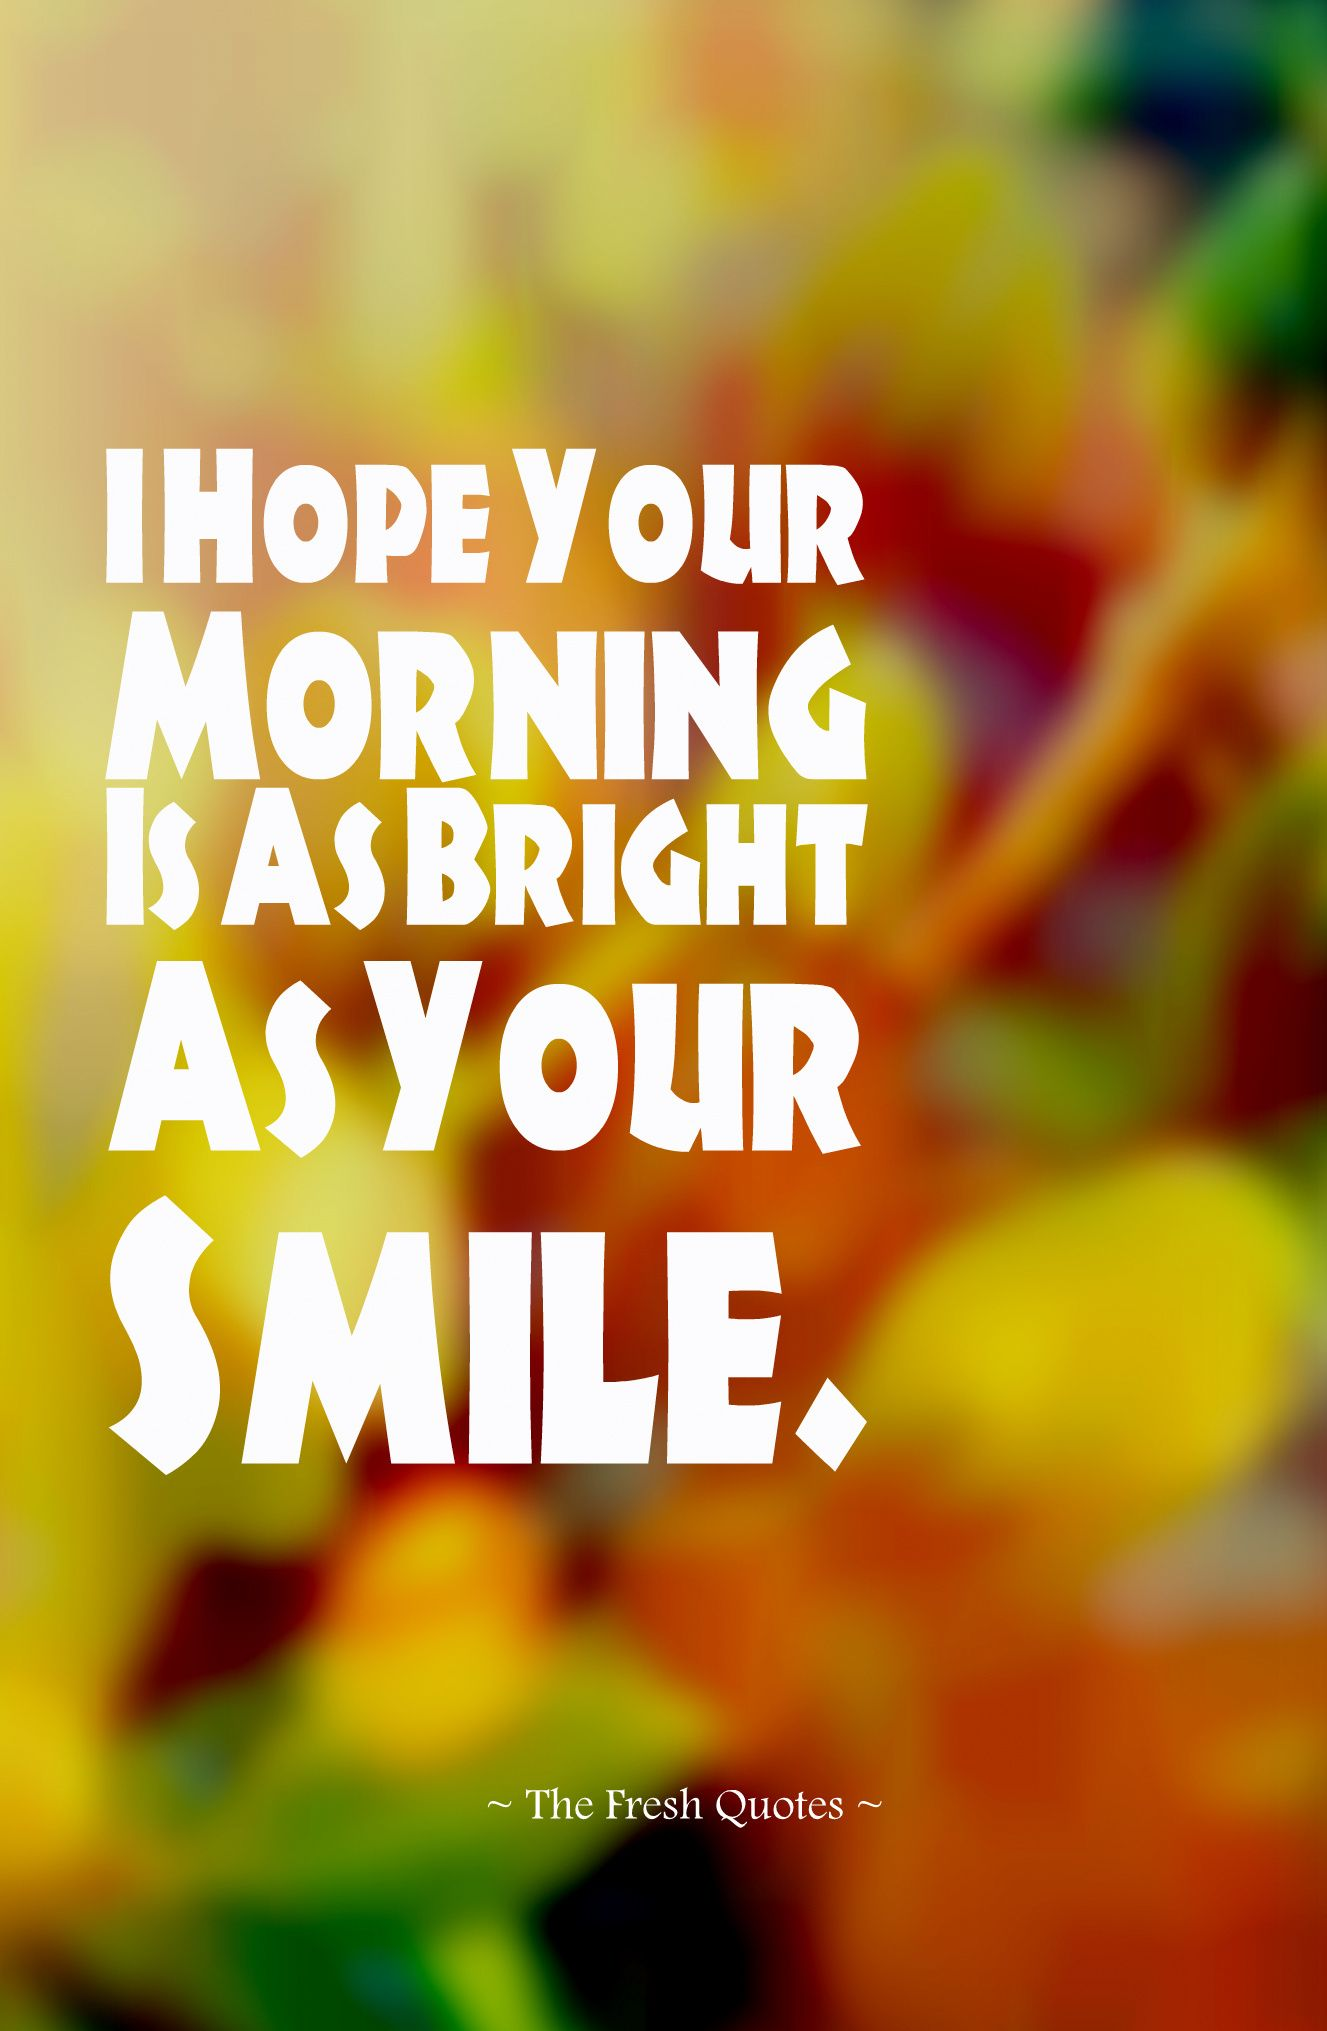 21 Refreshing Good Morning Quotes Will Make Your Day Good Morning